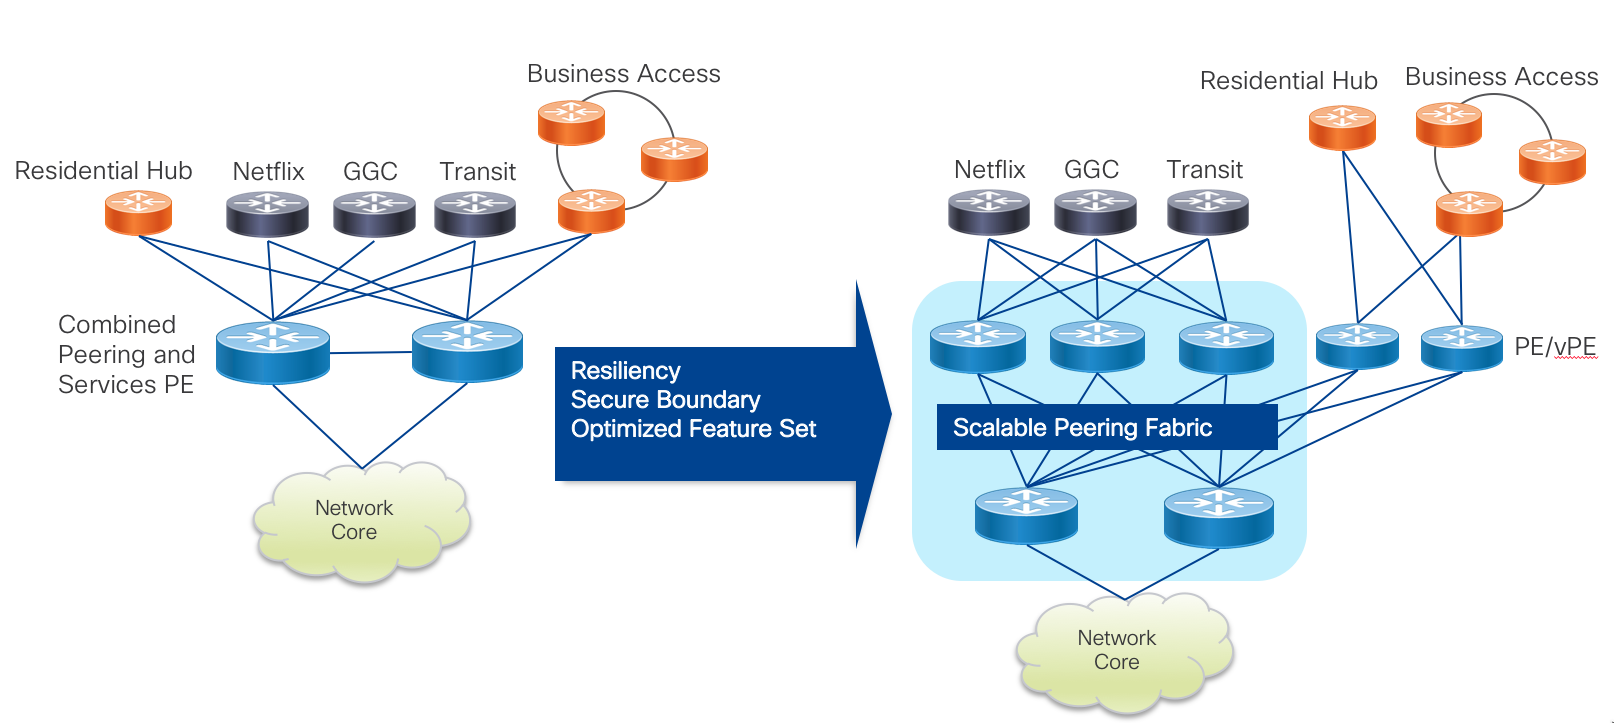 Peering Fabric Design Ios Xr Network Designs And Architectures Xrdocs Wiring Diagram As Well Cisco Inbound Call Flow On Fax Hook Up The Below Shows A Fully Distributed Where Peers Are Now Across Three Pfl Nodes Each With Full Connectivity To Upstream Pfs